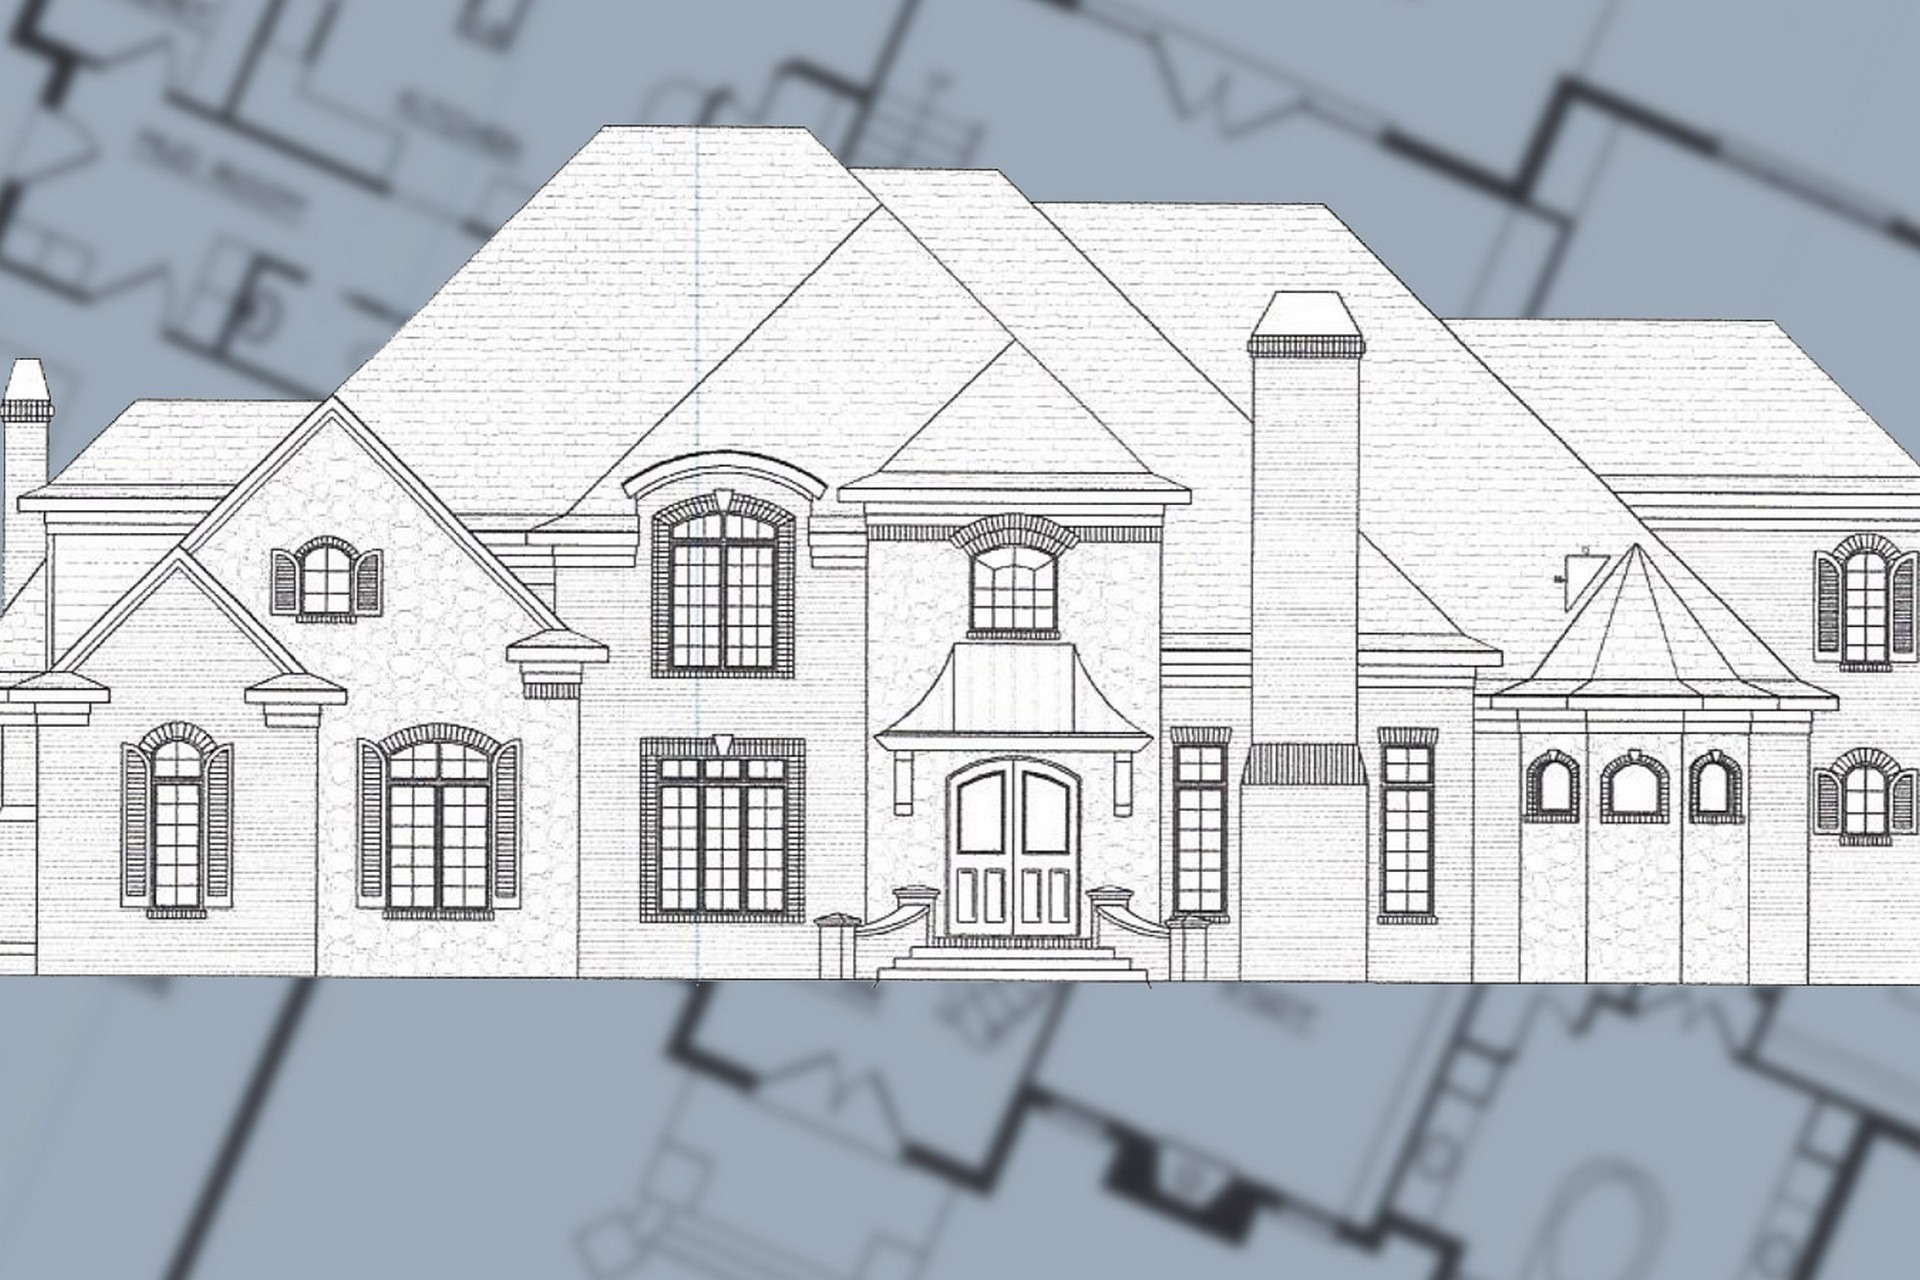 Single Family Home for Sale at 1100 Poplar Ridge Rd (Proposed Build) 1100 Poplar Ridge (proposed build) Goshen, Kentucky 40026 United States